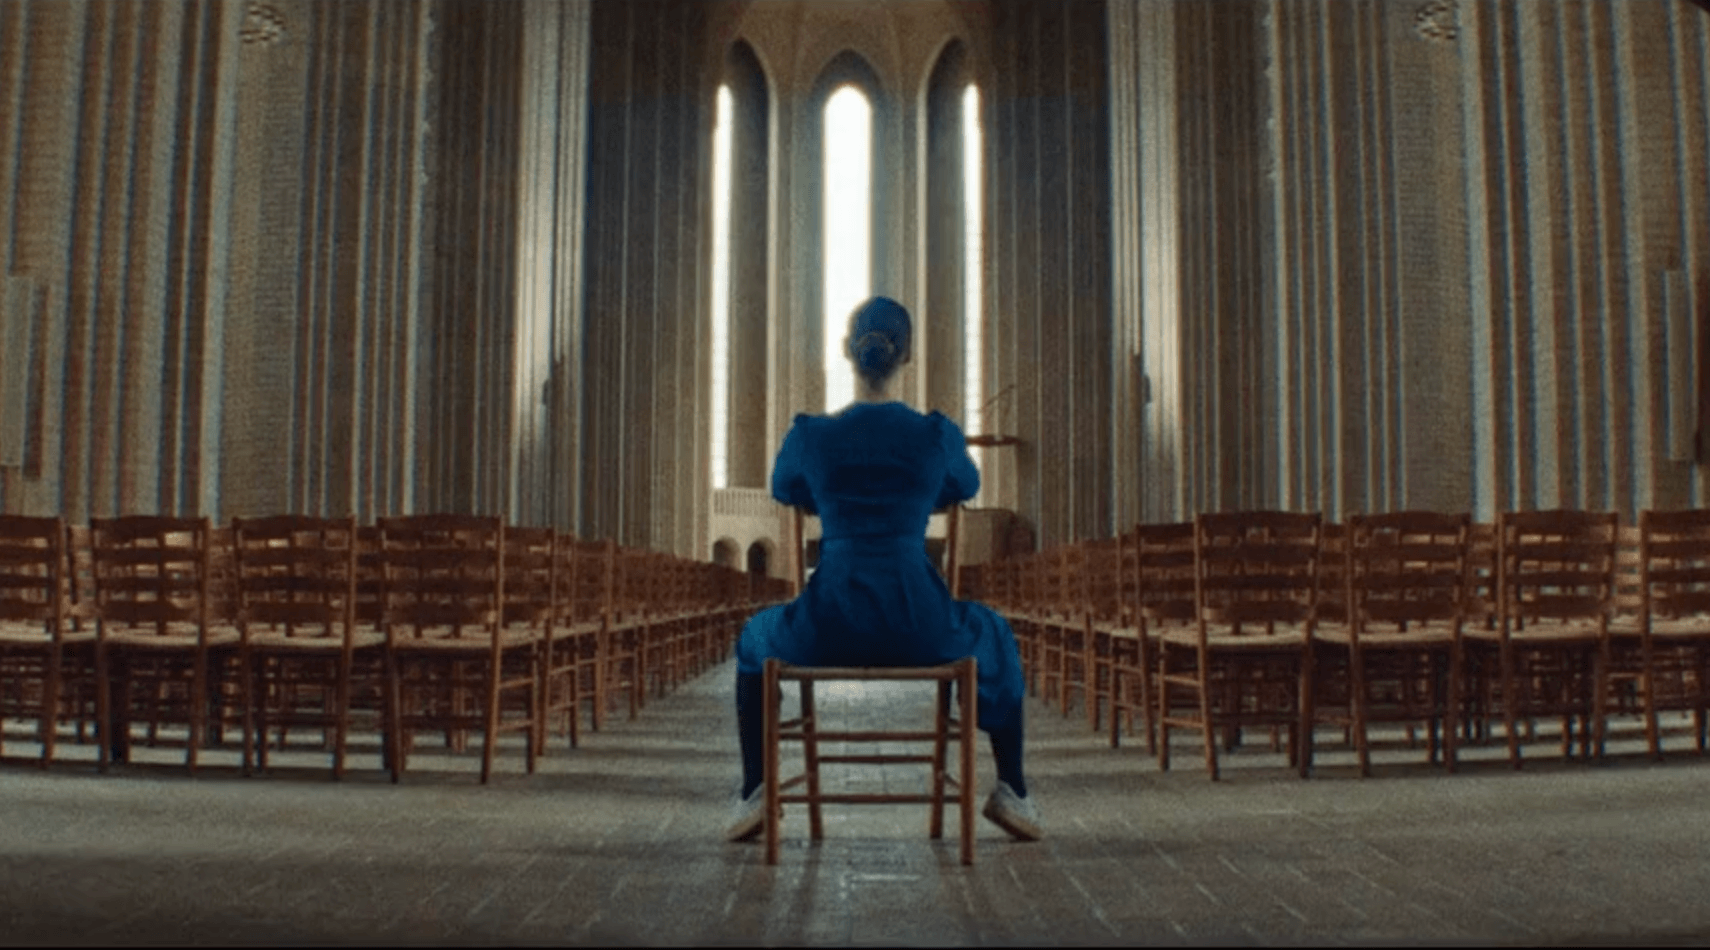 """Film """"Right to be yourself"""" for Mino Denmark directed by Mikkel Blaabjerg Poulsen"""